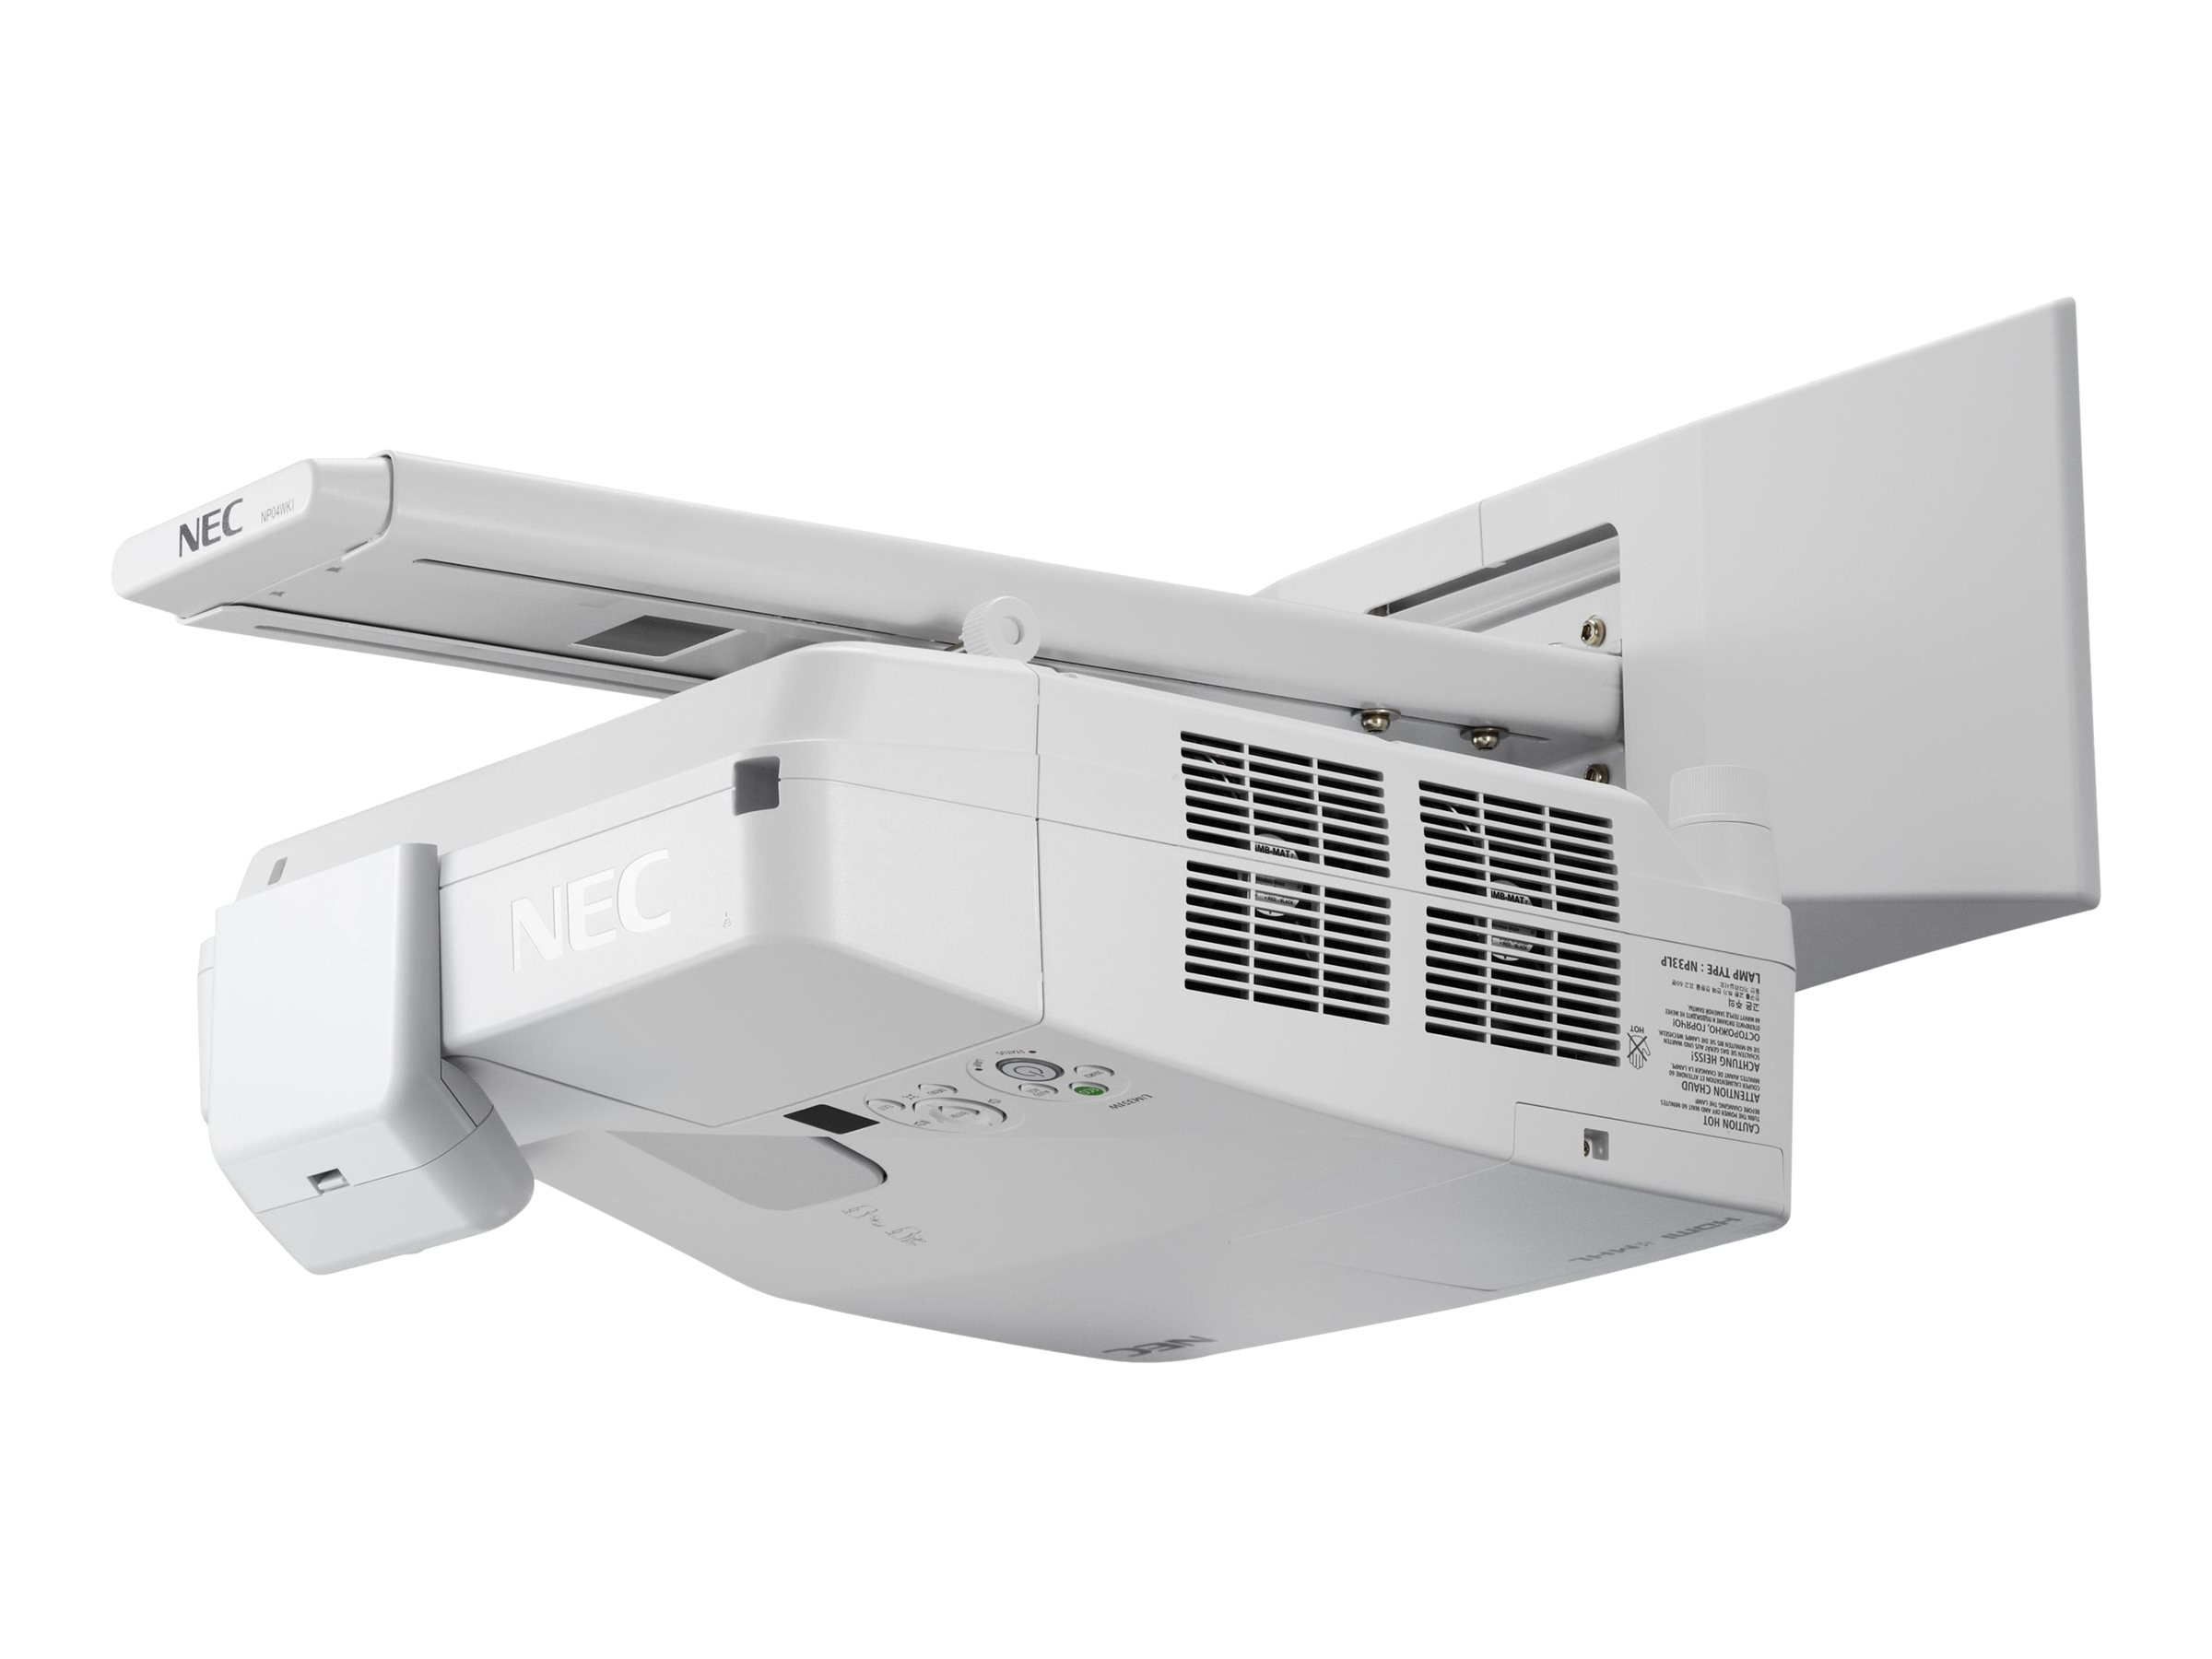 NEC UM361X Ultra Short Throw LCD Projector, 3600 Lumens, White with Wall Mount, Touch Module, NP-UM361XI-TM, 18481236, Projectors